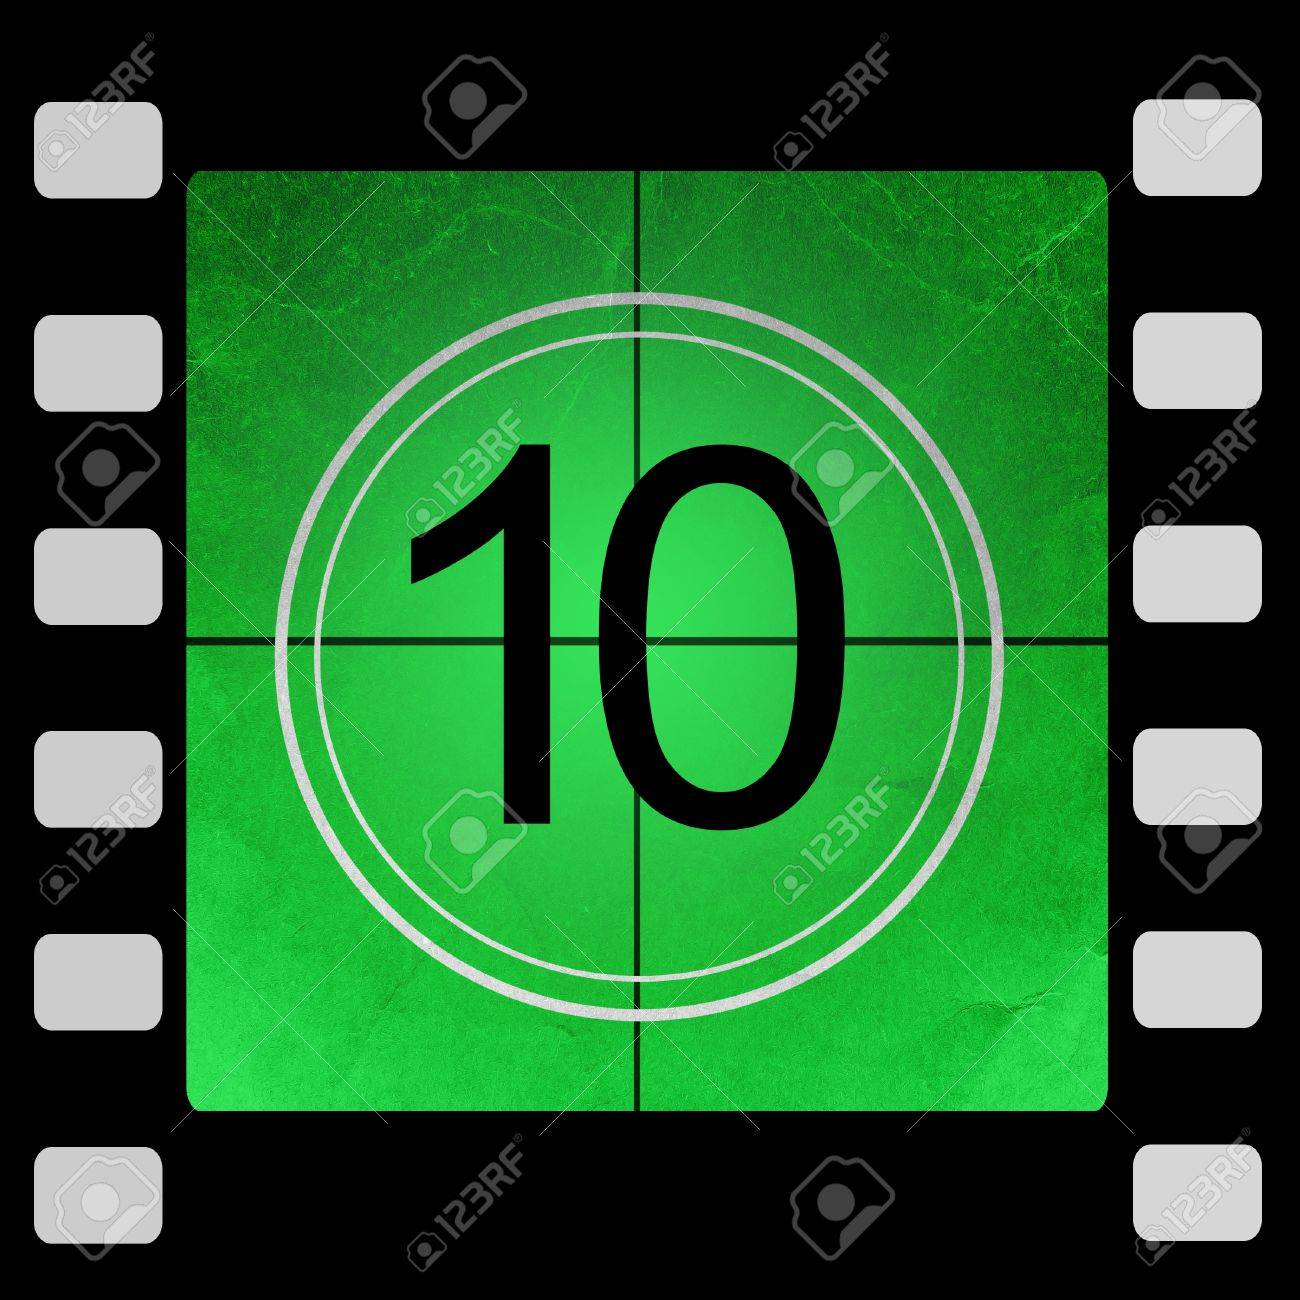 OLD movie COUNTDOWN ! Old Style Film Counter 10 sec - full version ...